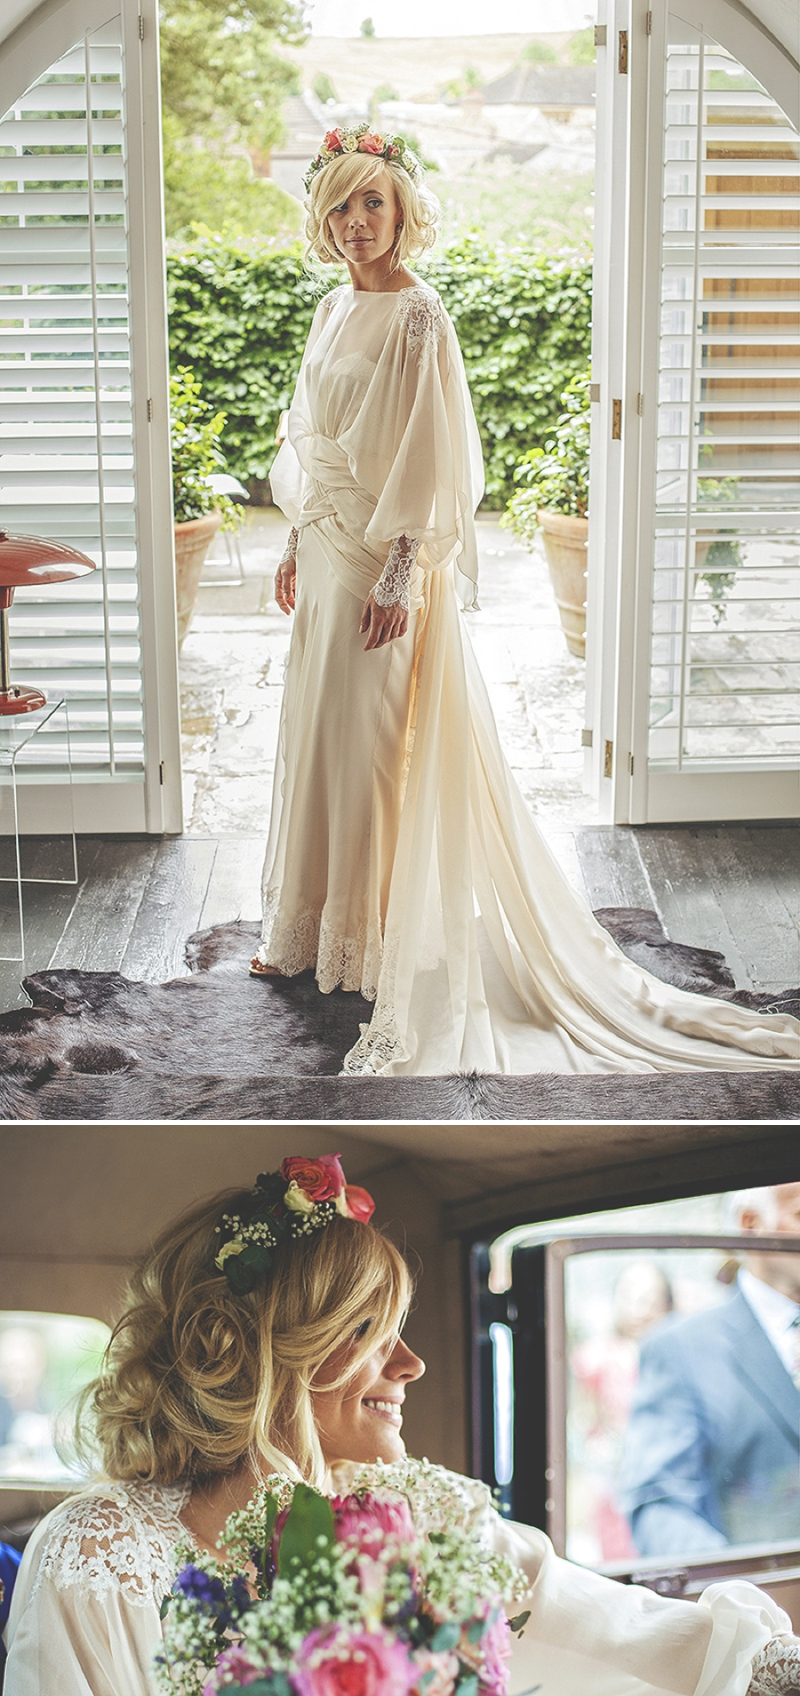 A bespoke designed by the bride wedding dress for a festival Glastonbury themed wedding in Somerset with a floral crown and vintage styling and coral bridesmaids_0473